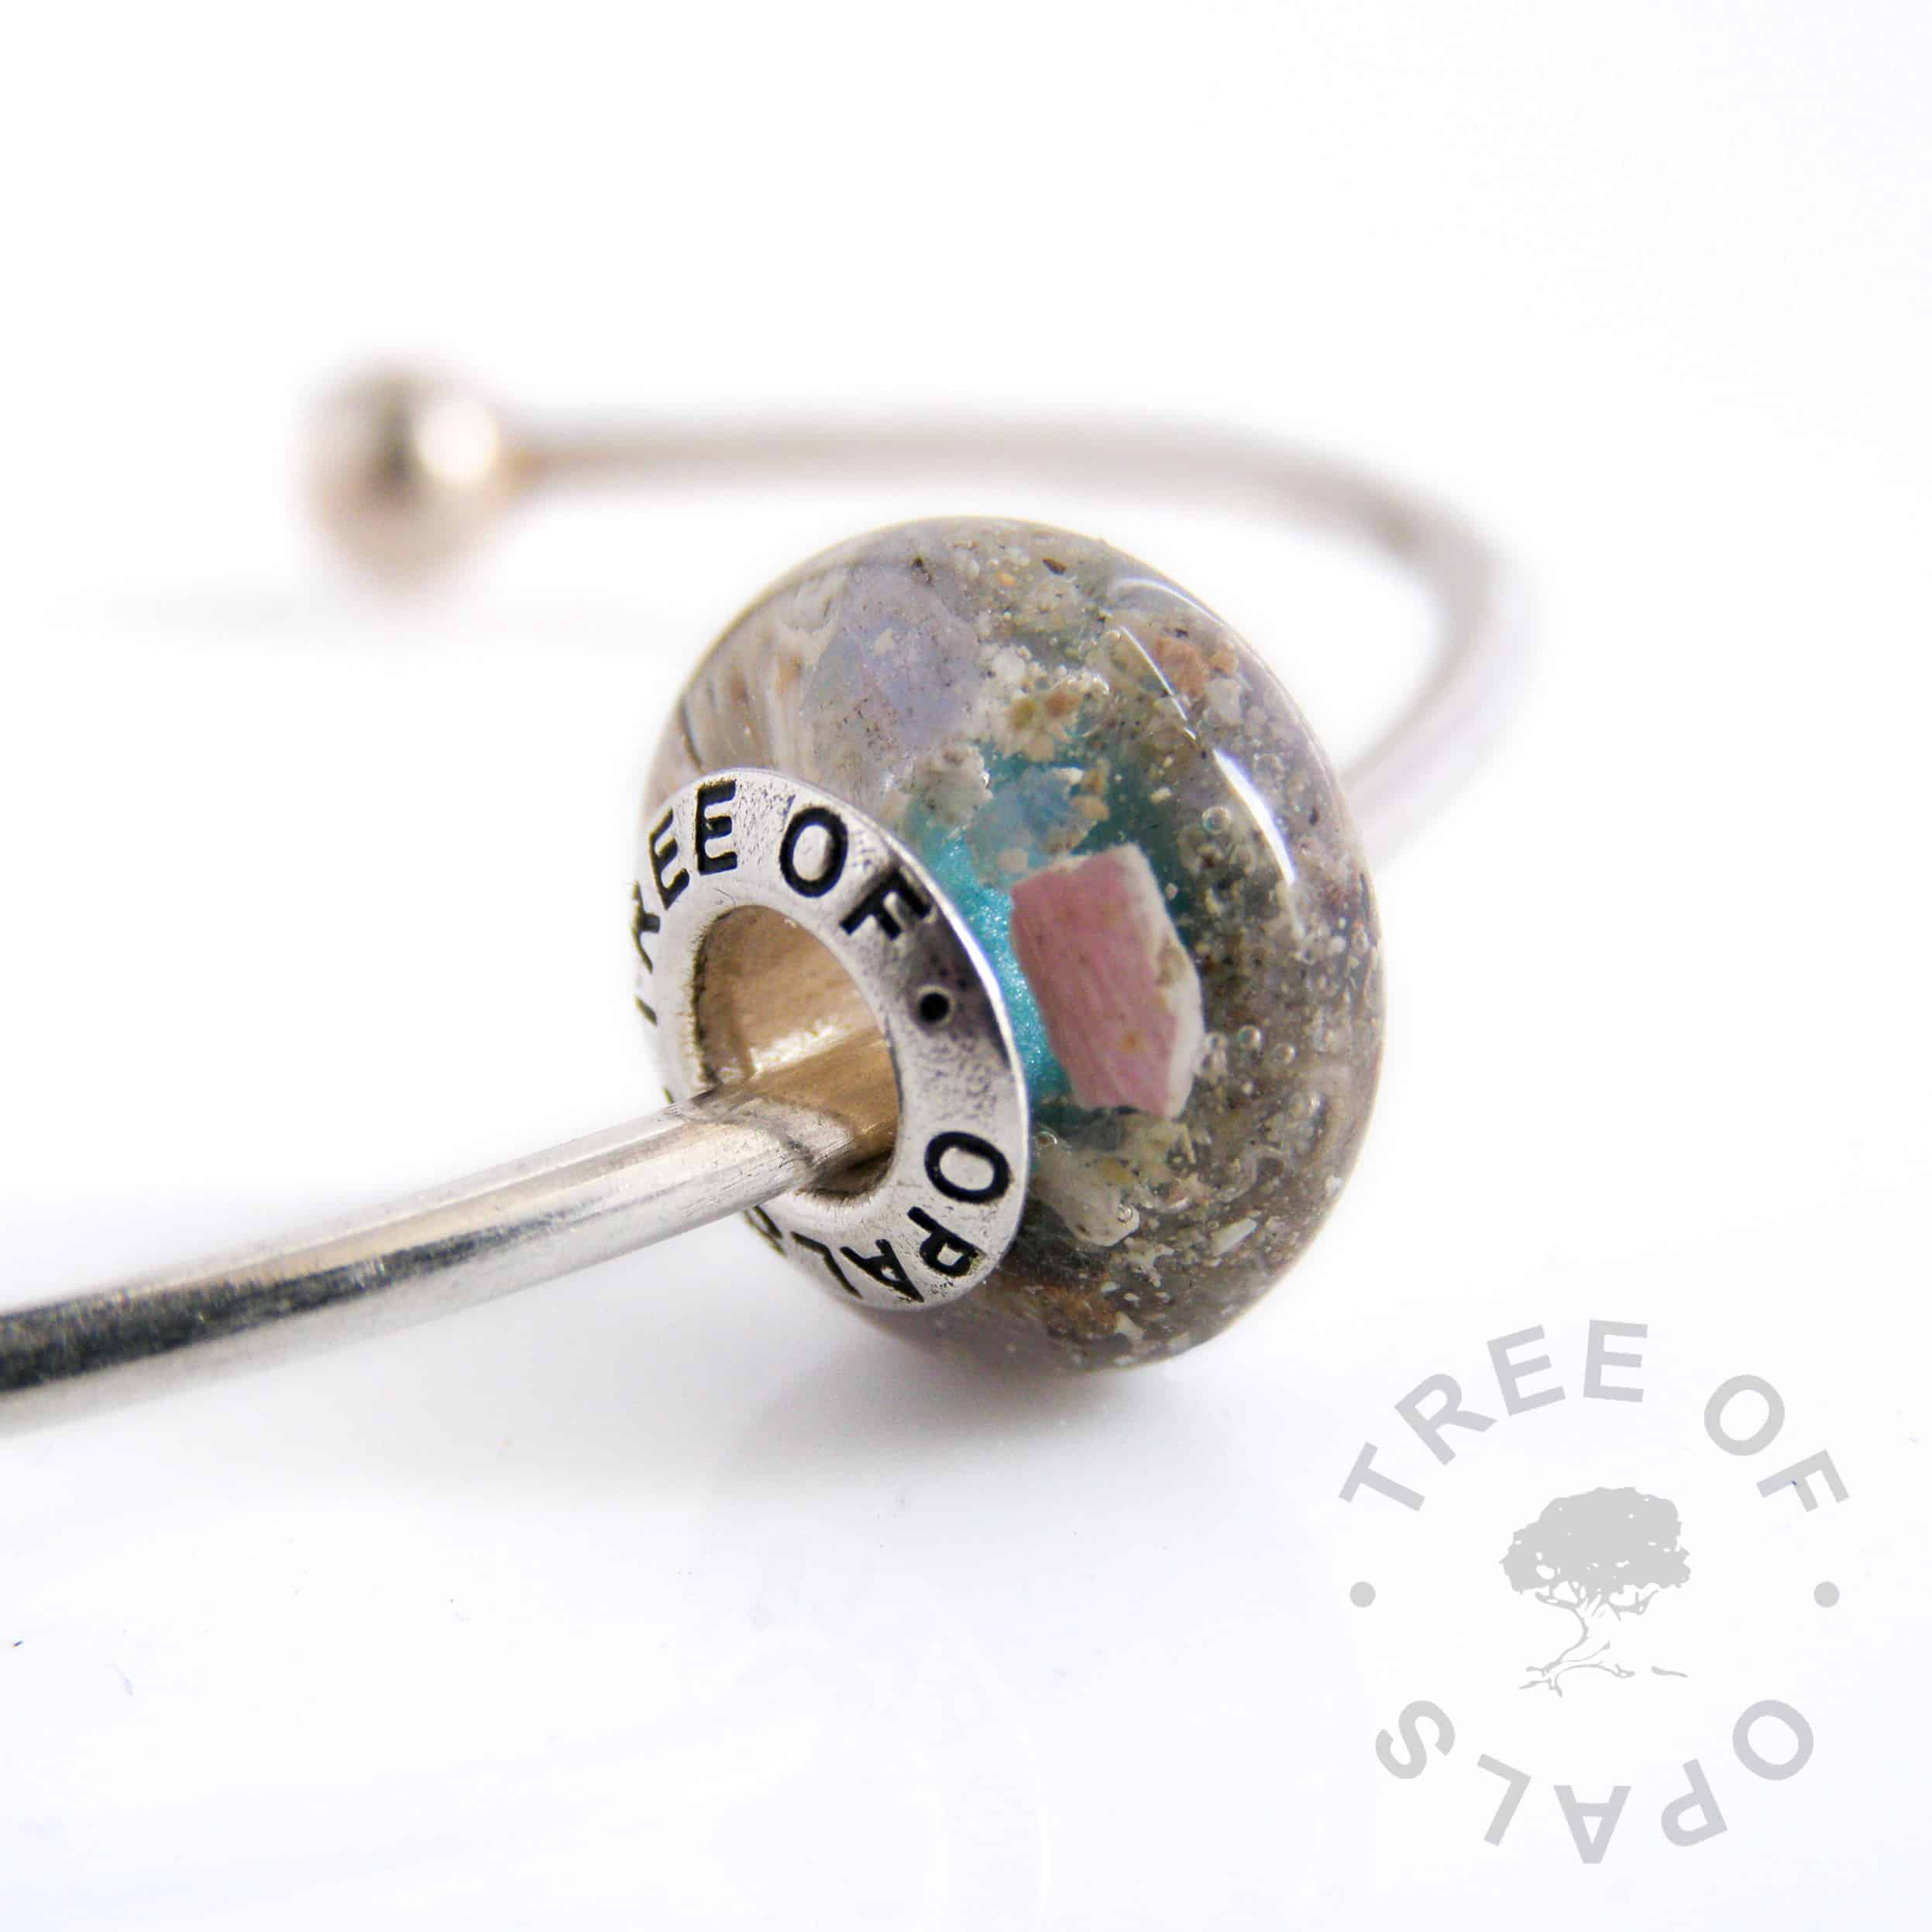 cremation ash charm bead with crystal clear resin and tanzanite June birthstone sterling silver Tree of Opals solid core, teal shimmer painted core